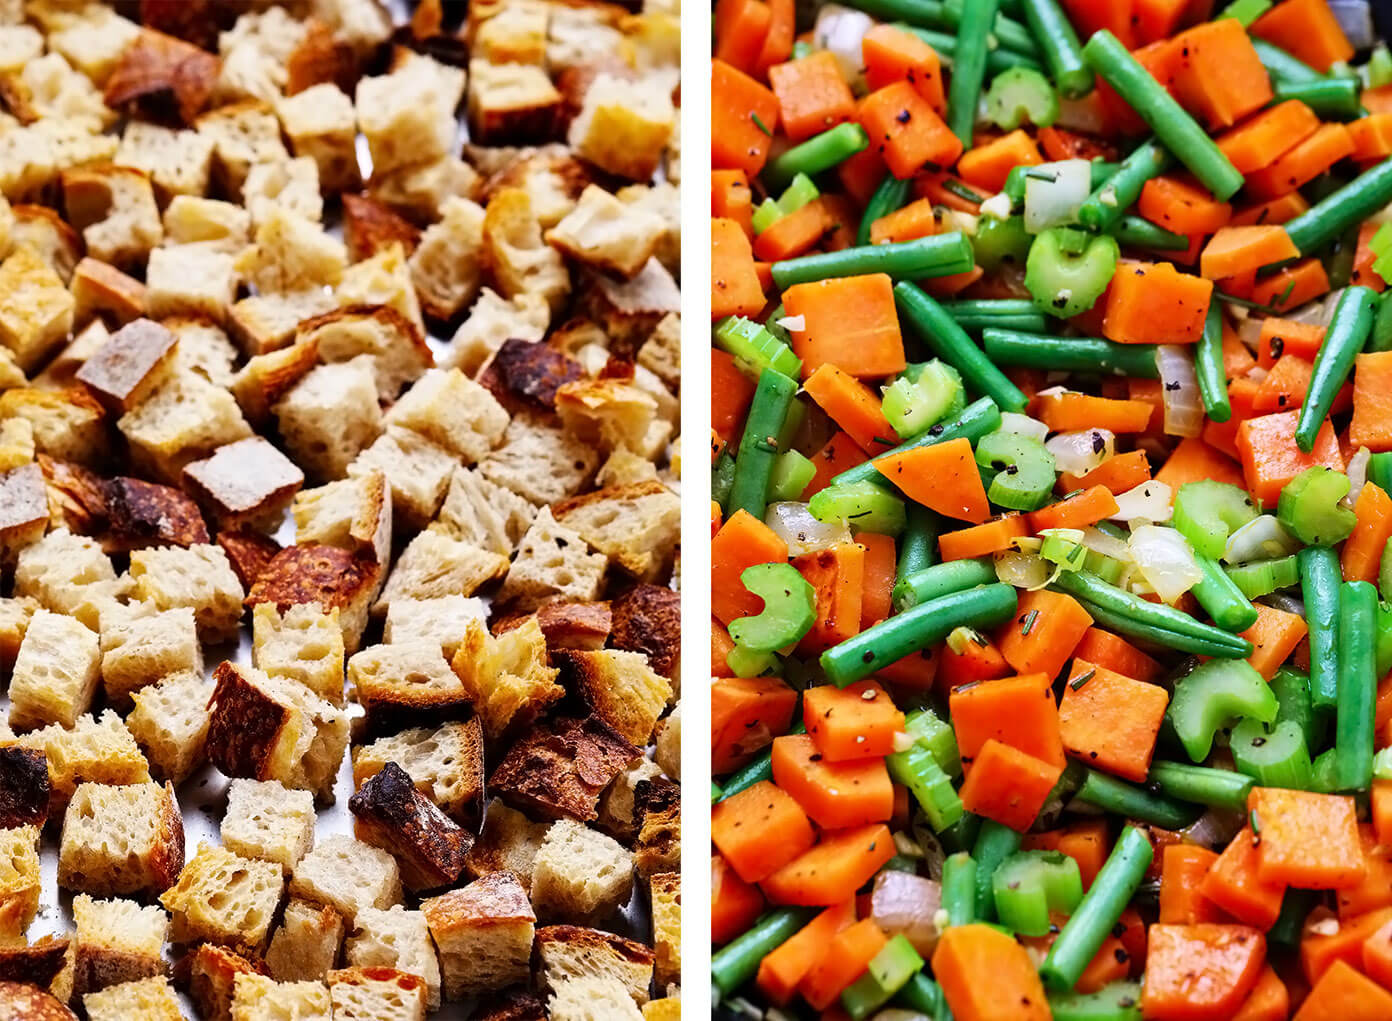 Toasted Sourdough Croutons and Sautéed Thanksgiving Veggies